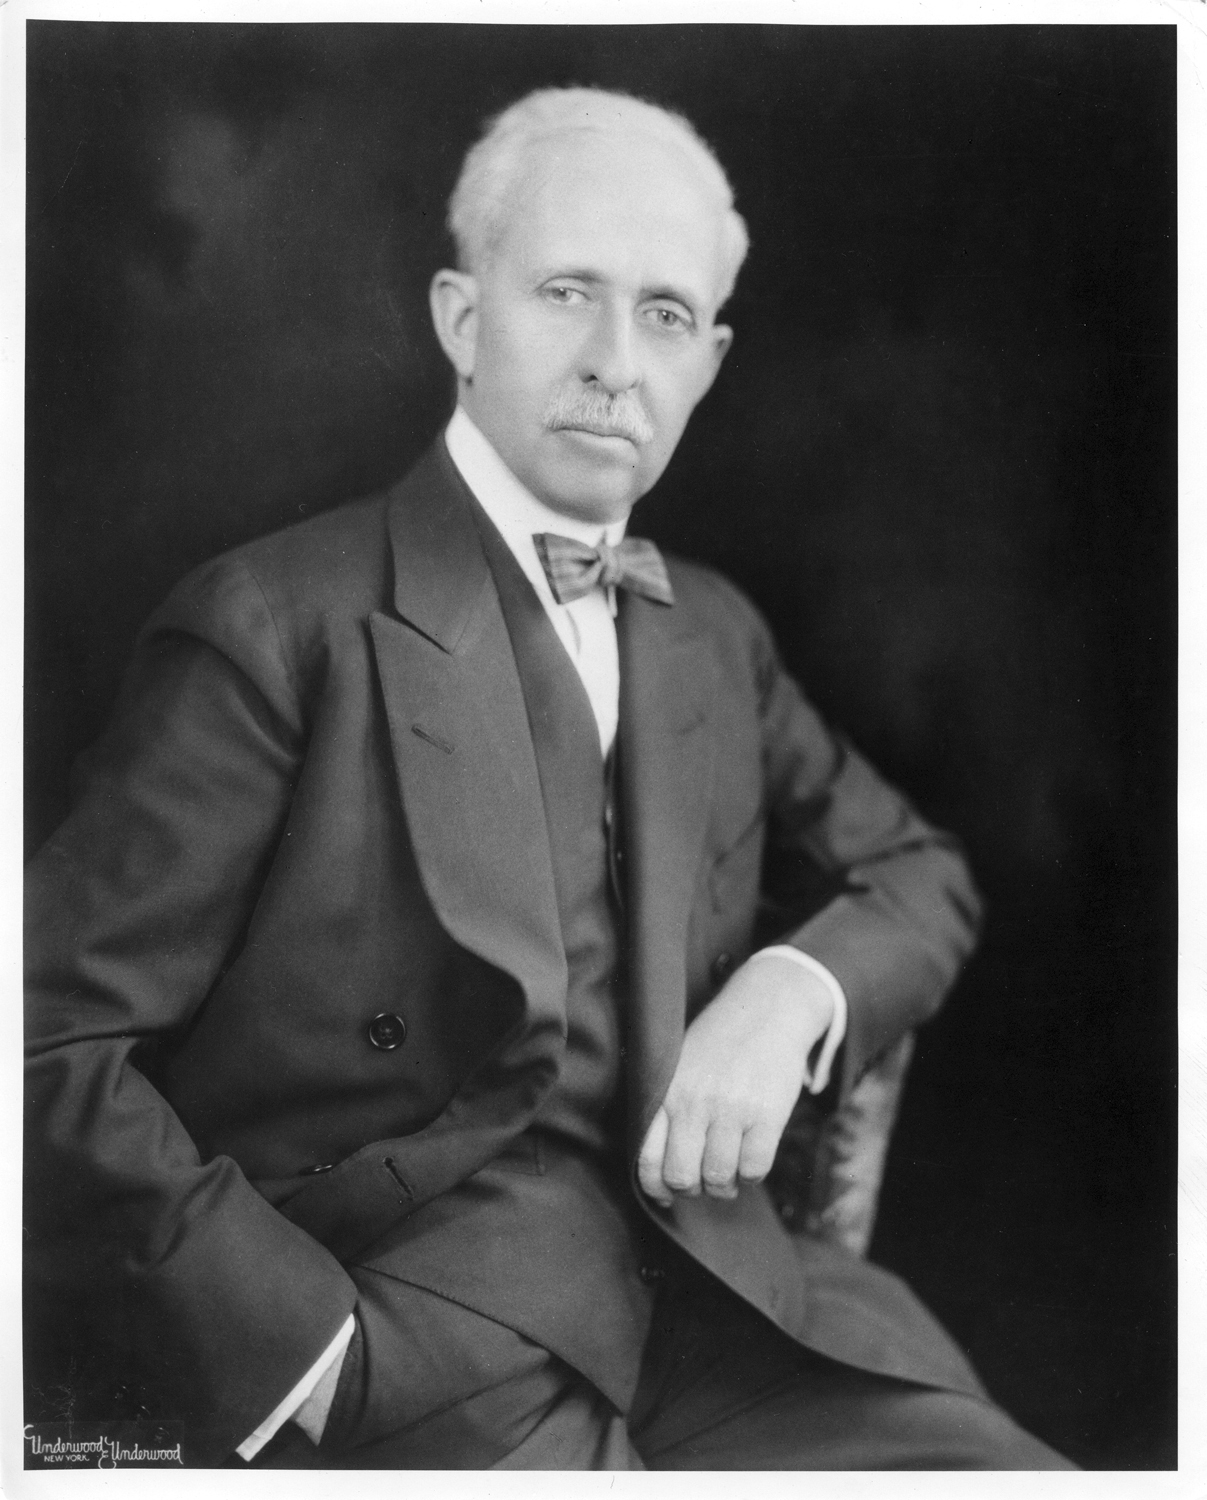 James Cash Penney in 1929